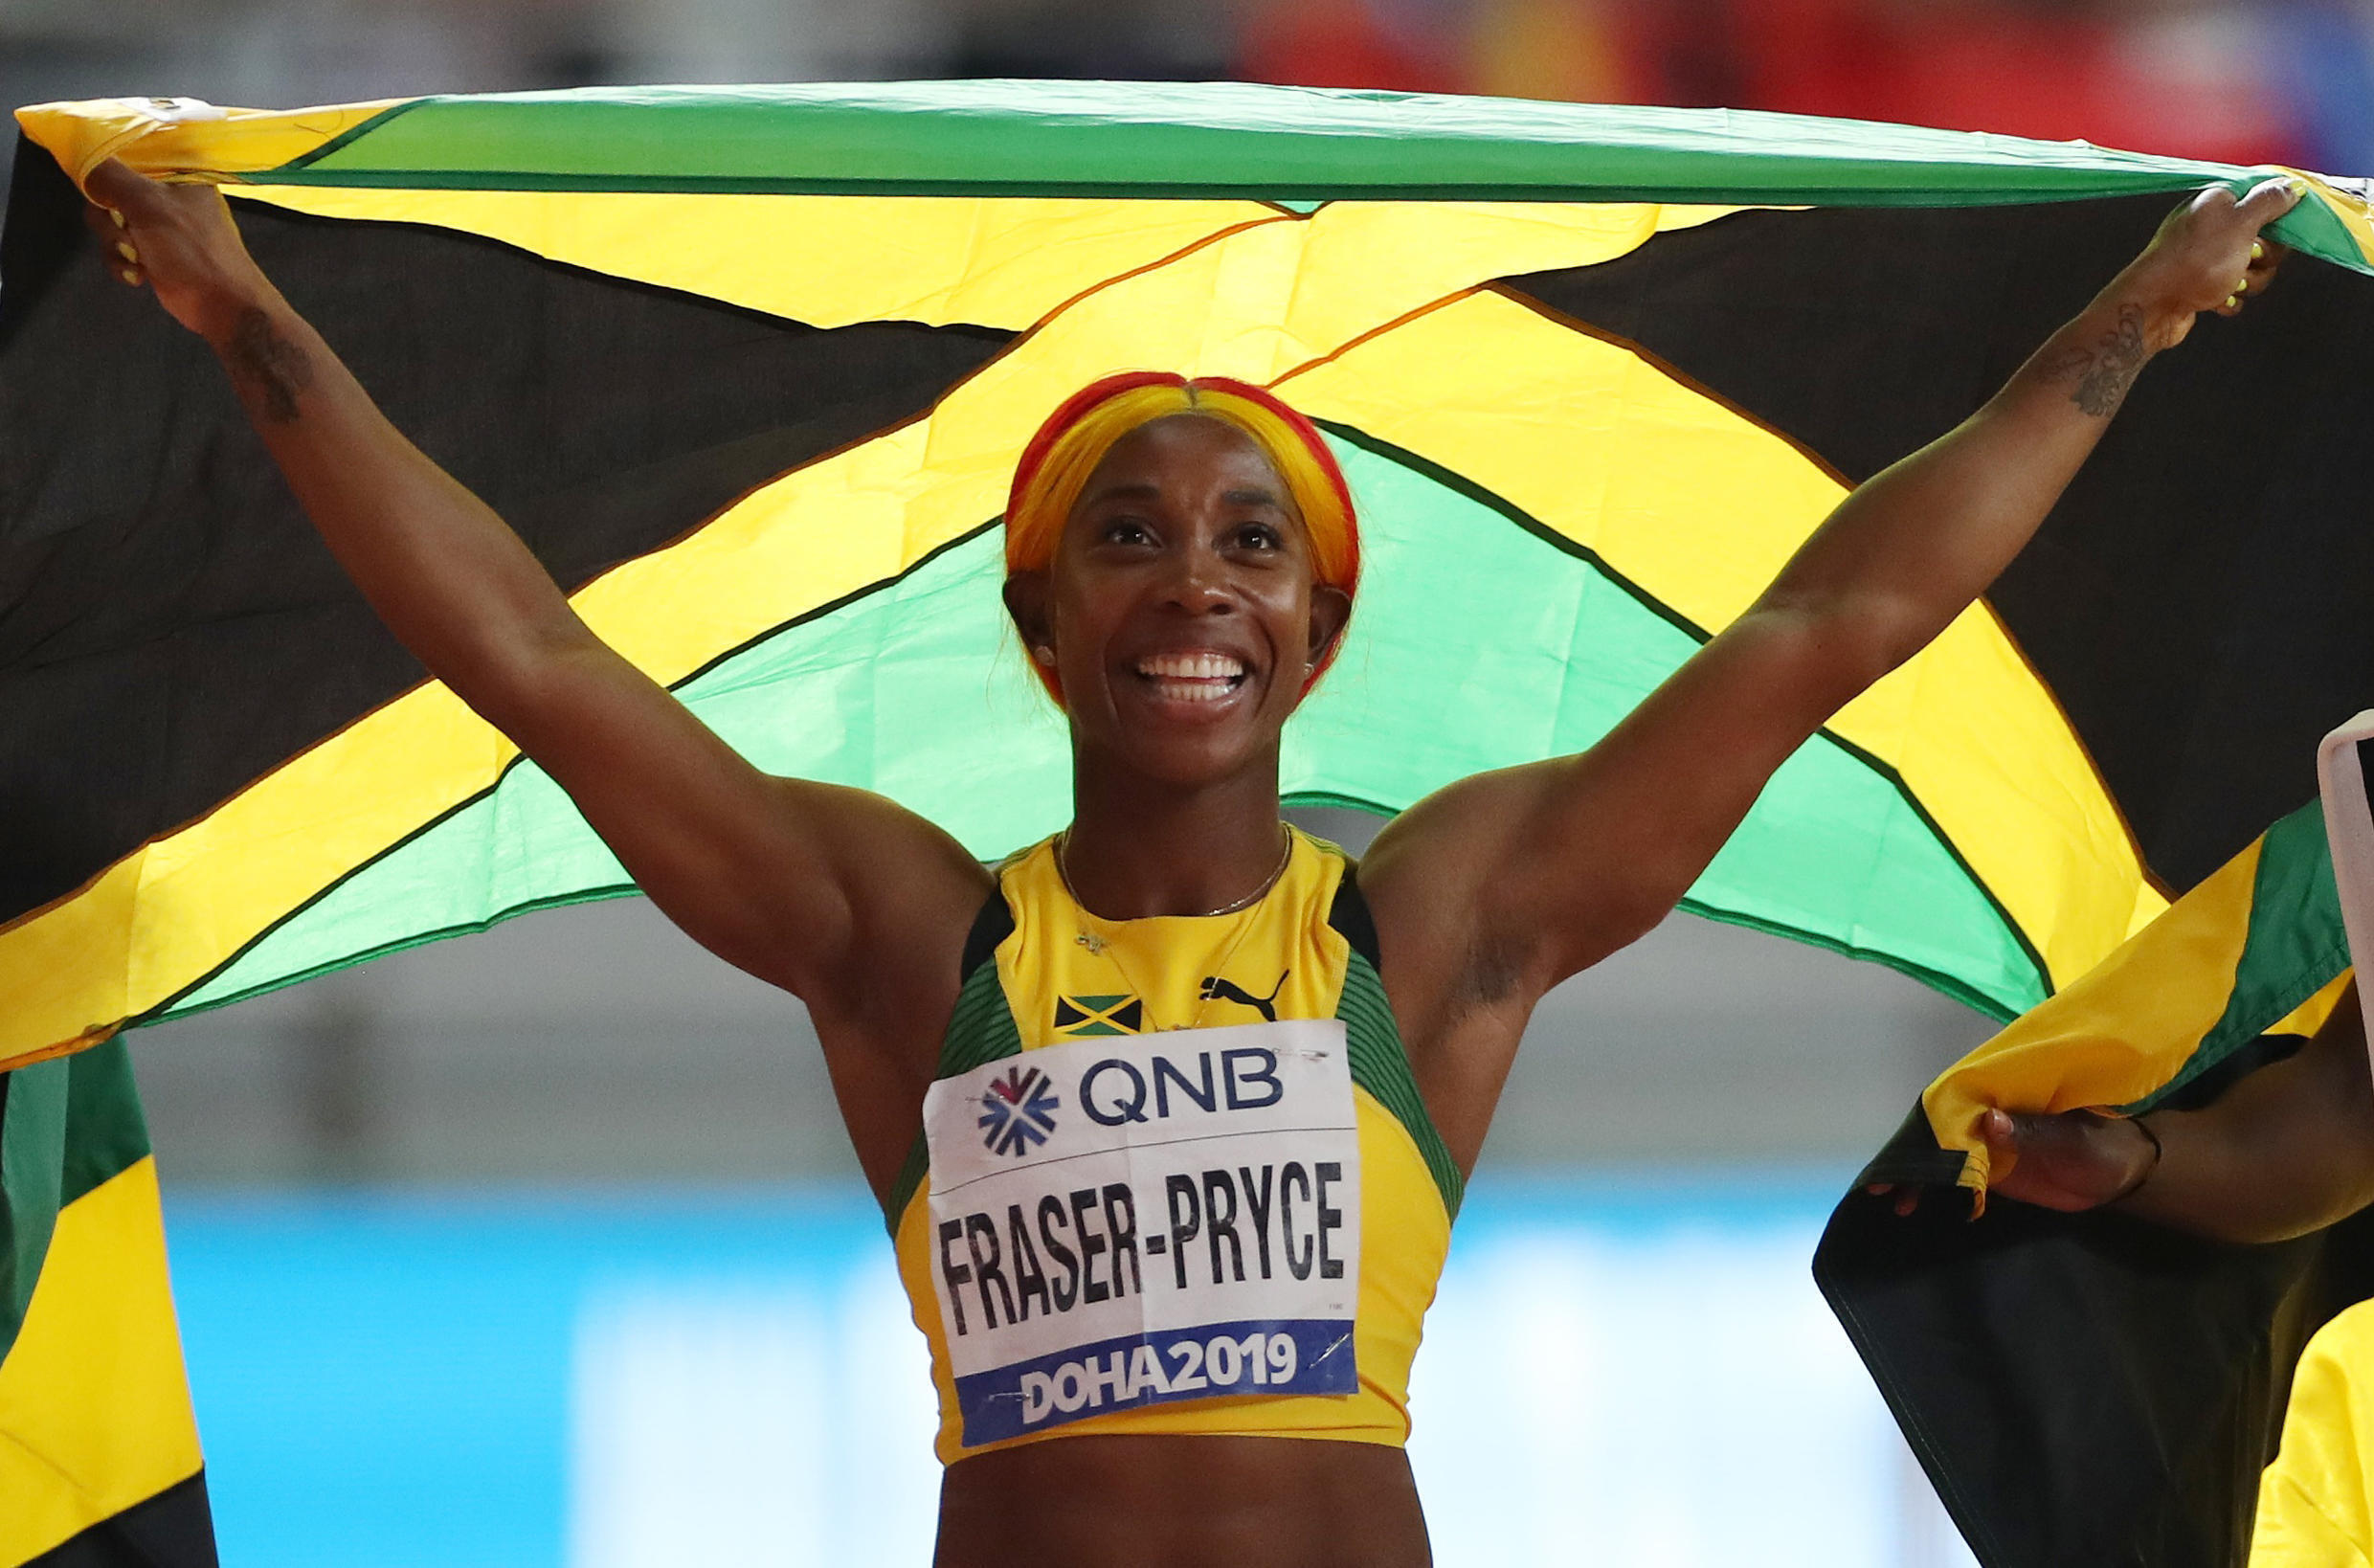 Shelly-Ann Fraser-Pryce was one of the standout performers at the 2019 championships with two gold medals after returning from having her first child.